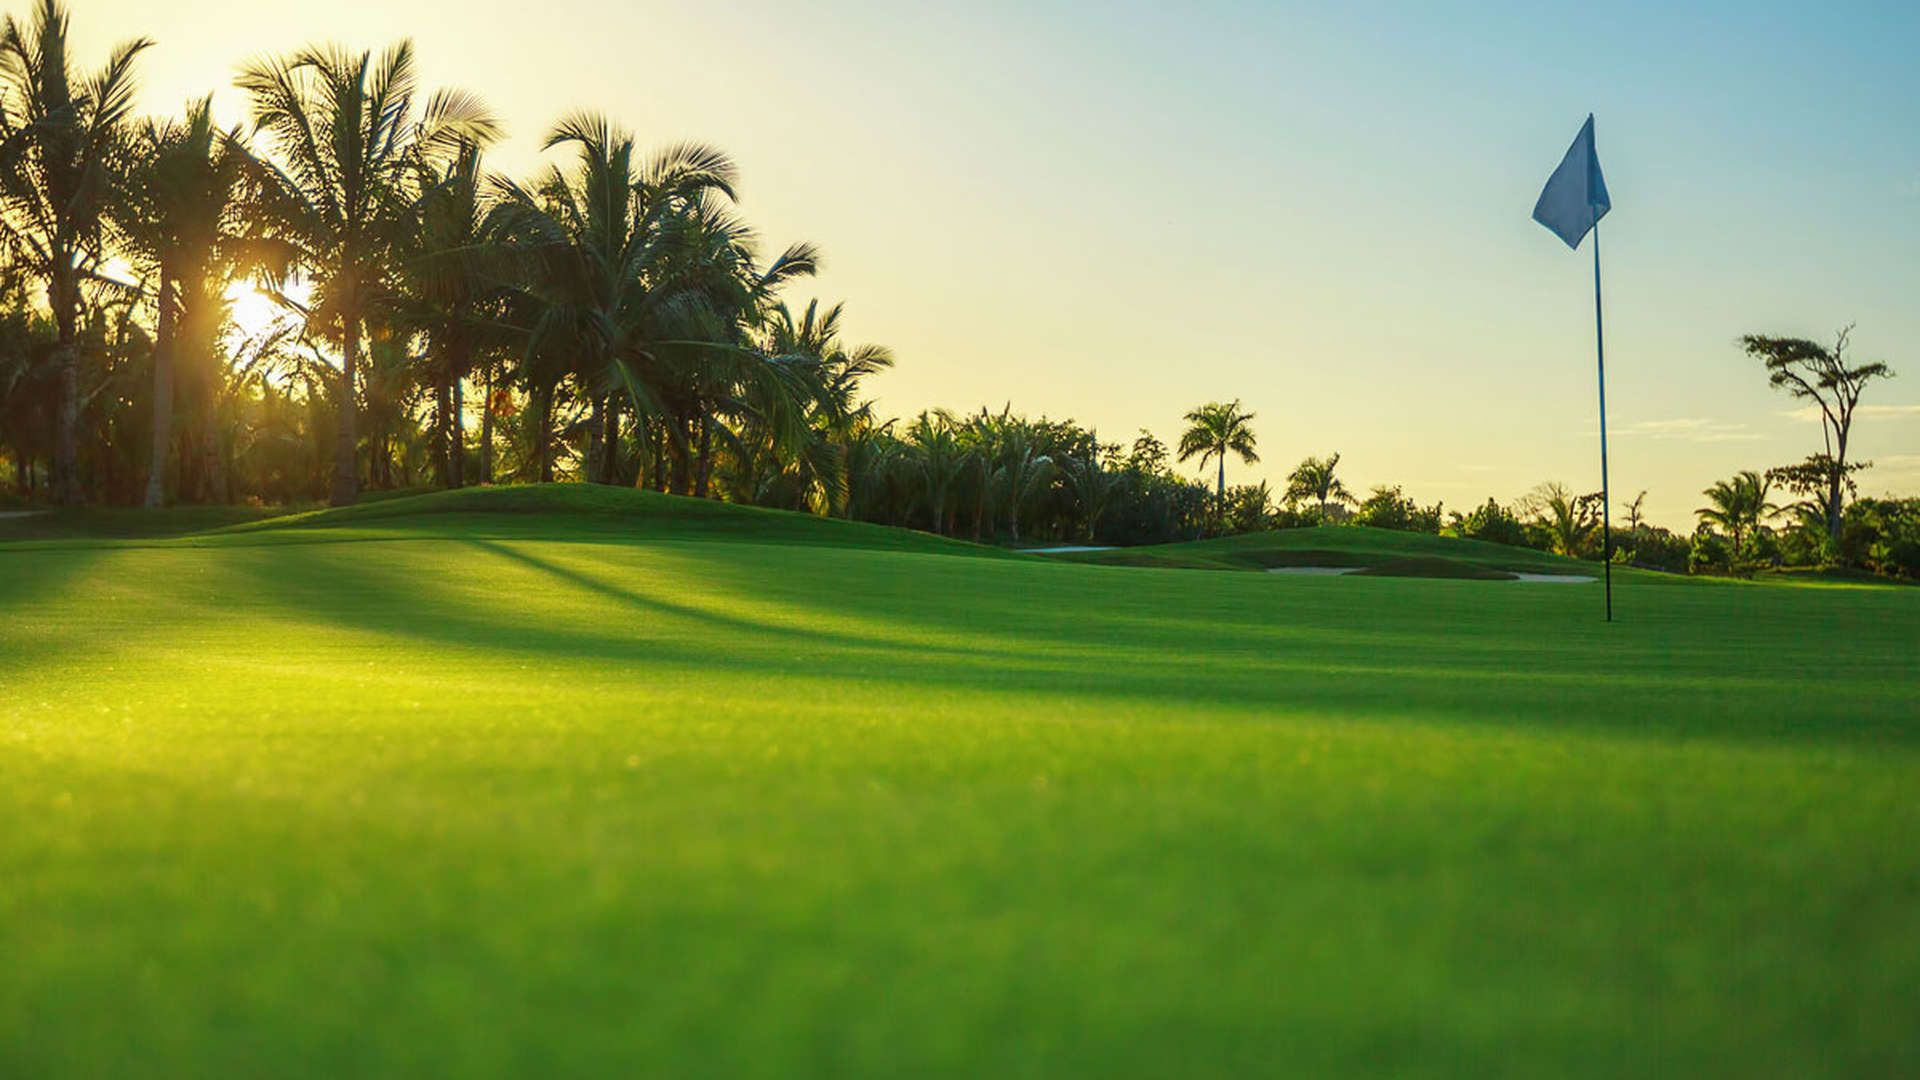 Resale, Green Belt, Full Golf Course And Lake View